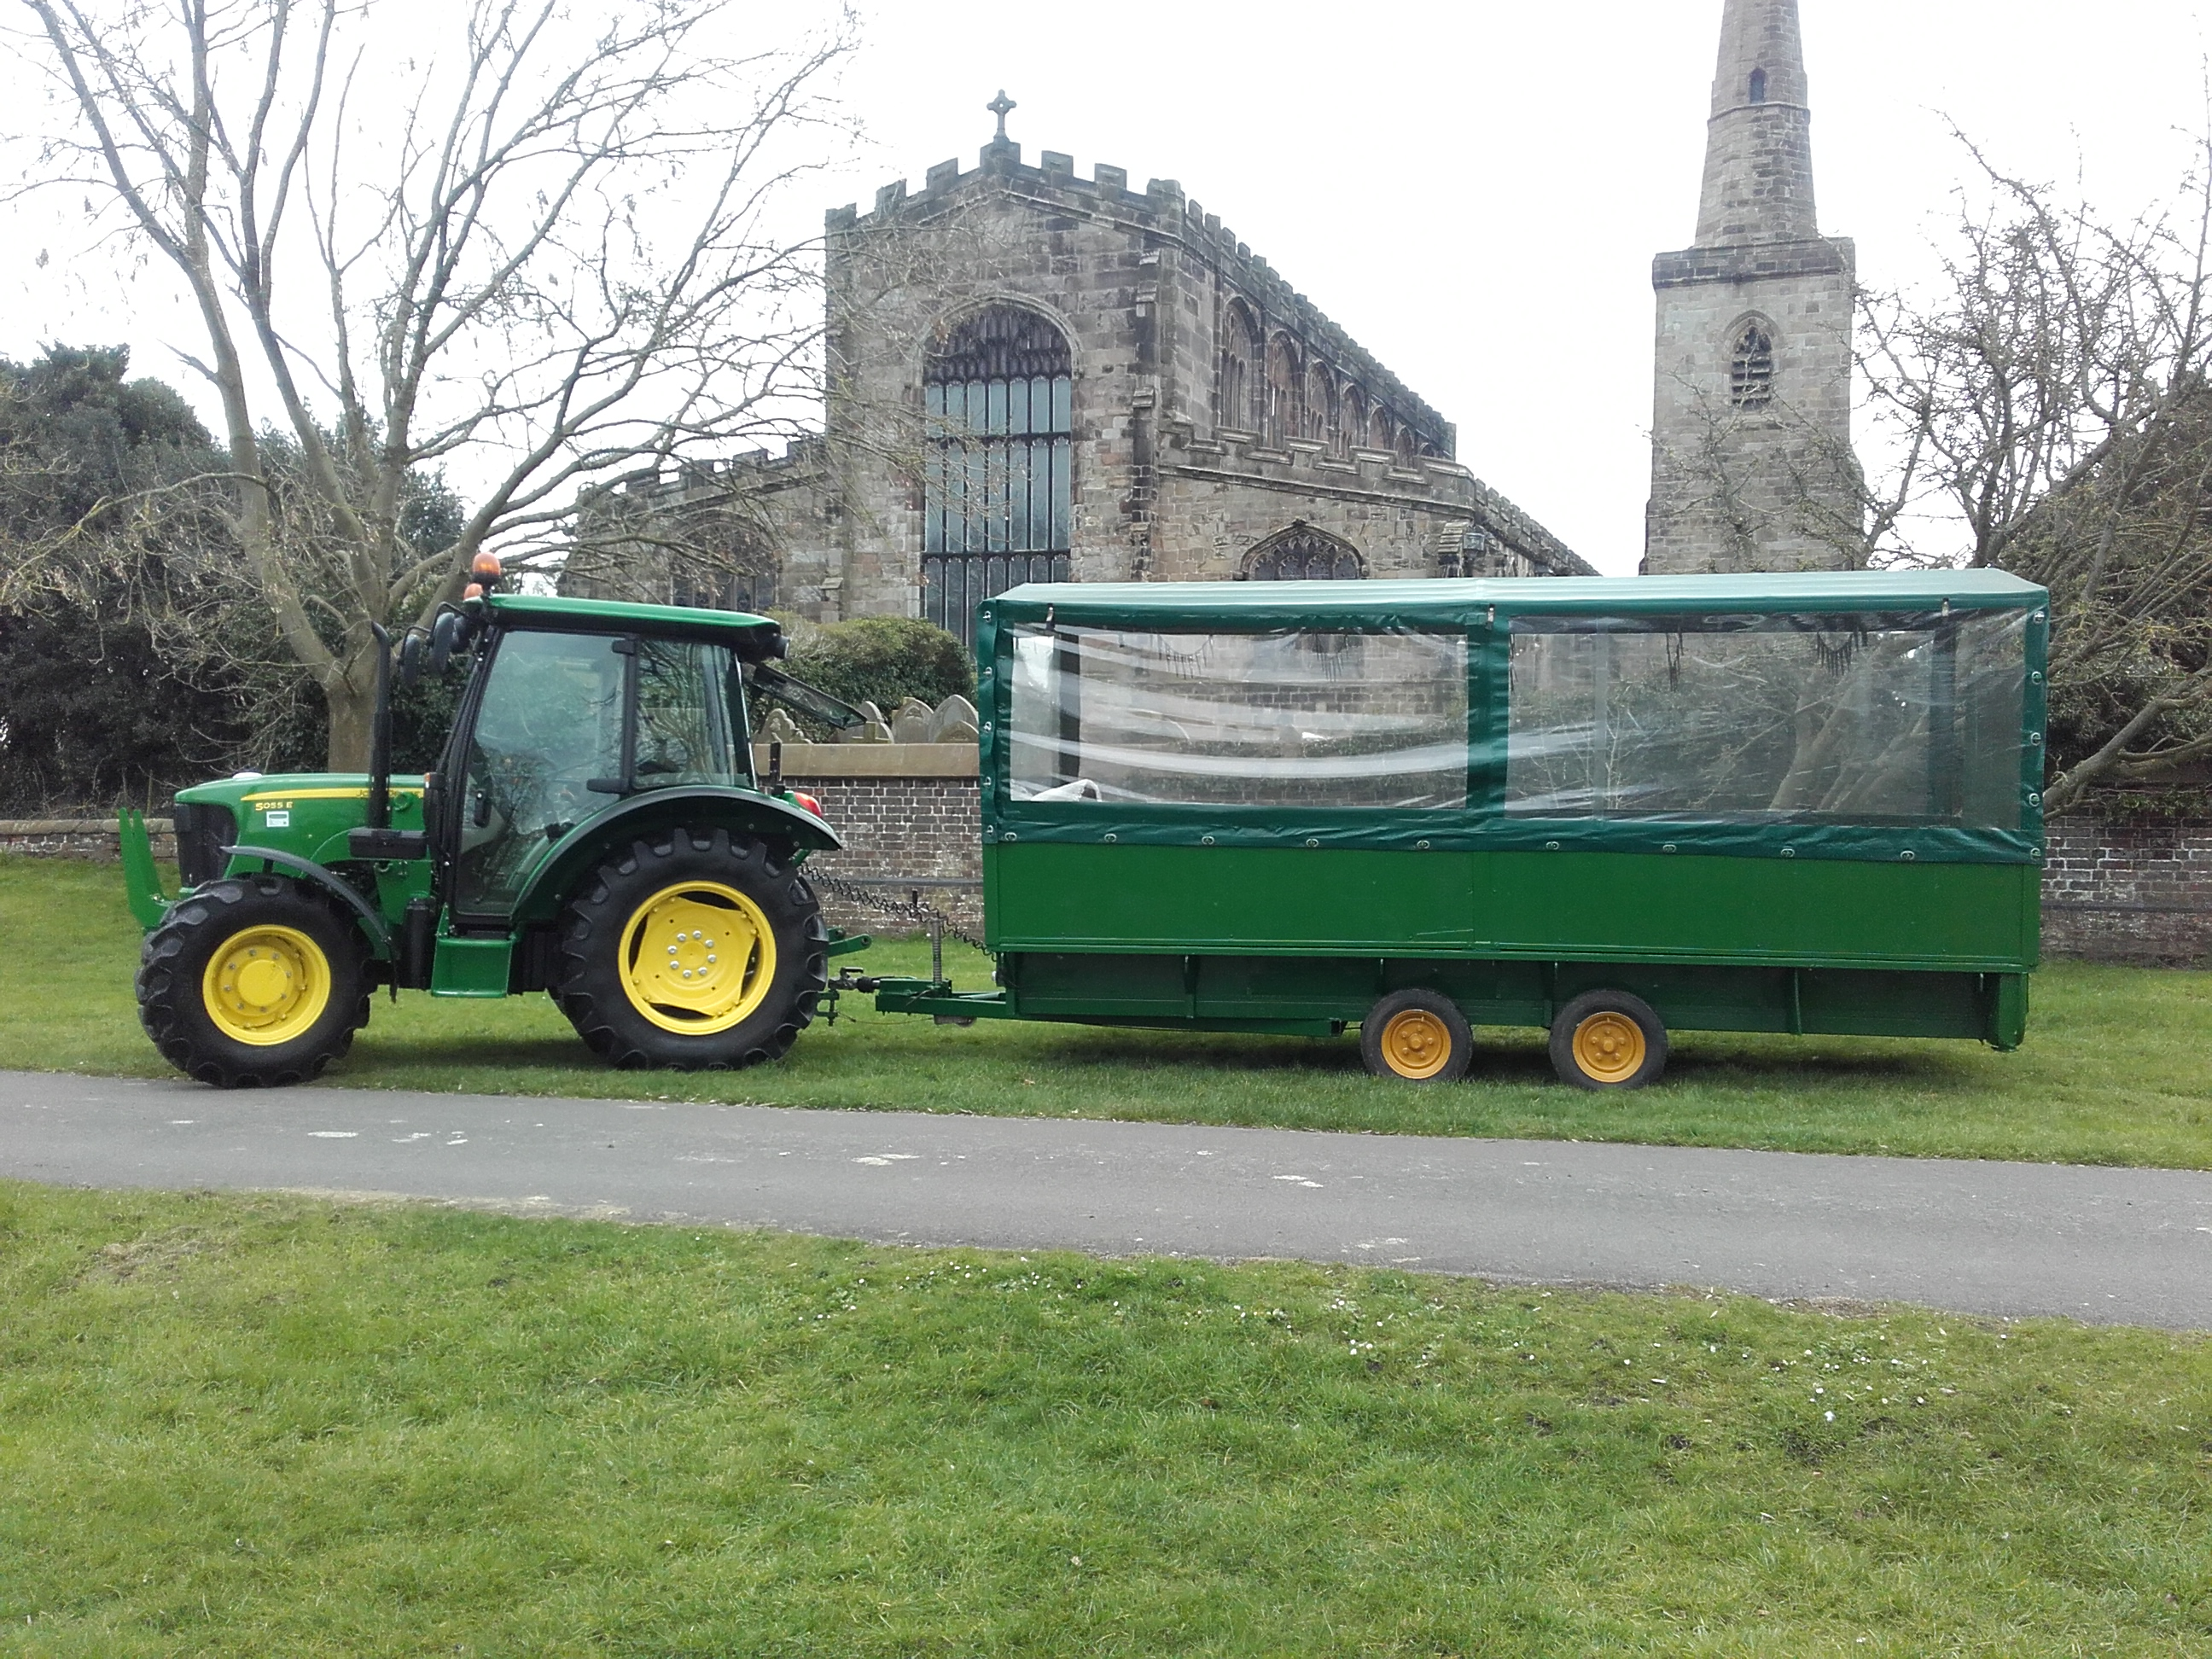 Tractor rides at Glebe Farm